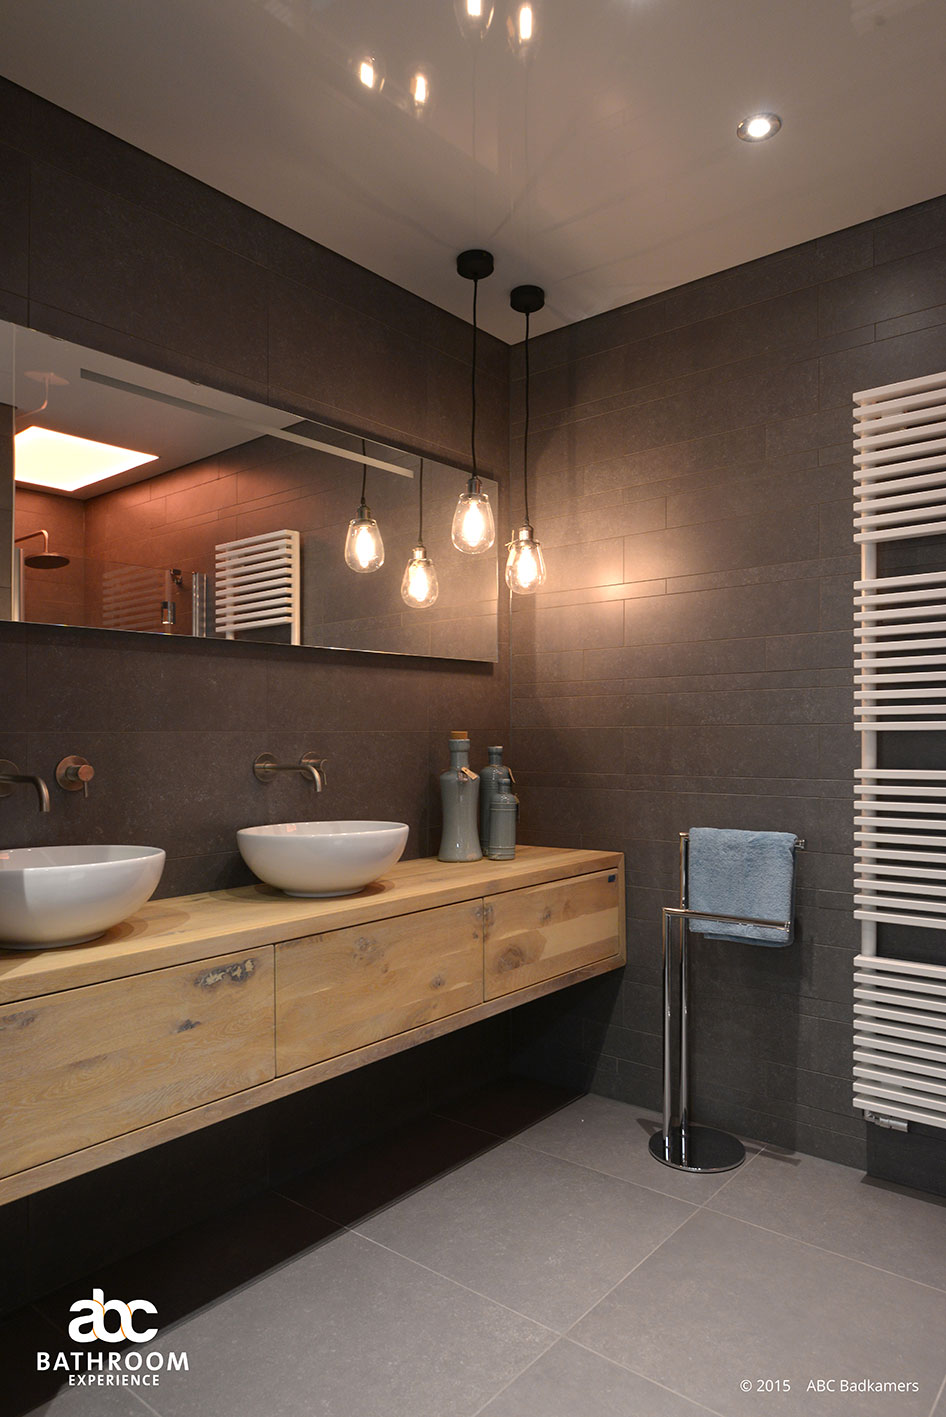 Best Badkamers Deventer Gallery - Interior Design Ideas - directboats.co